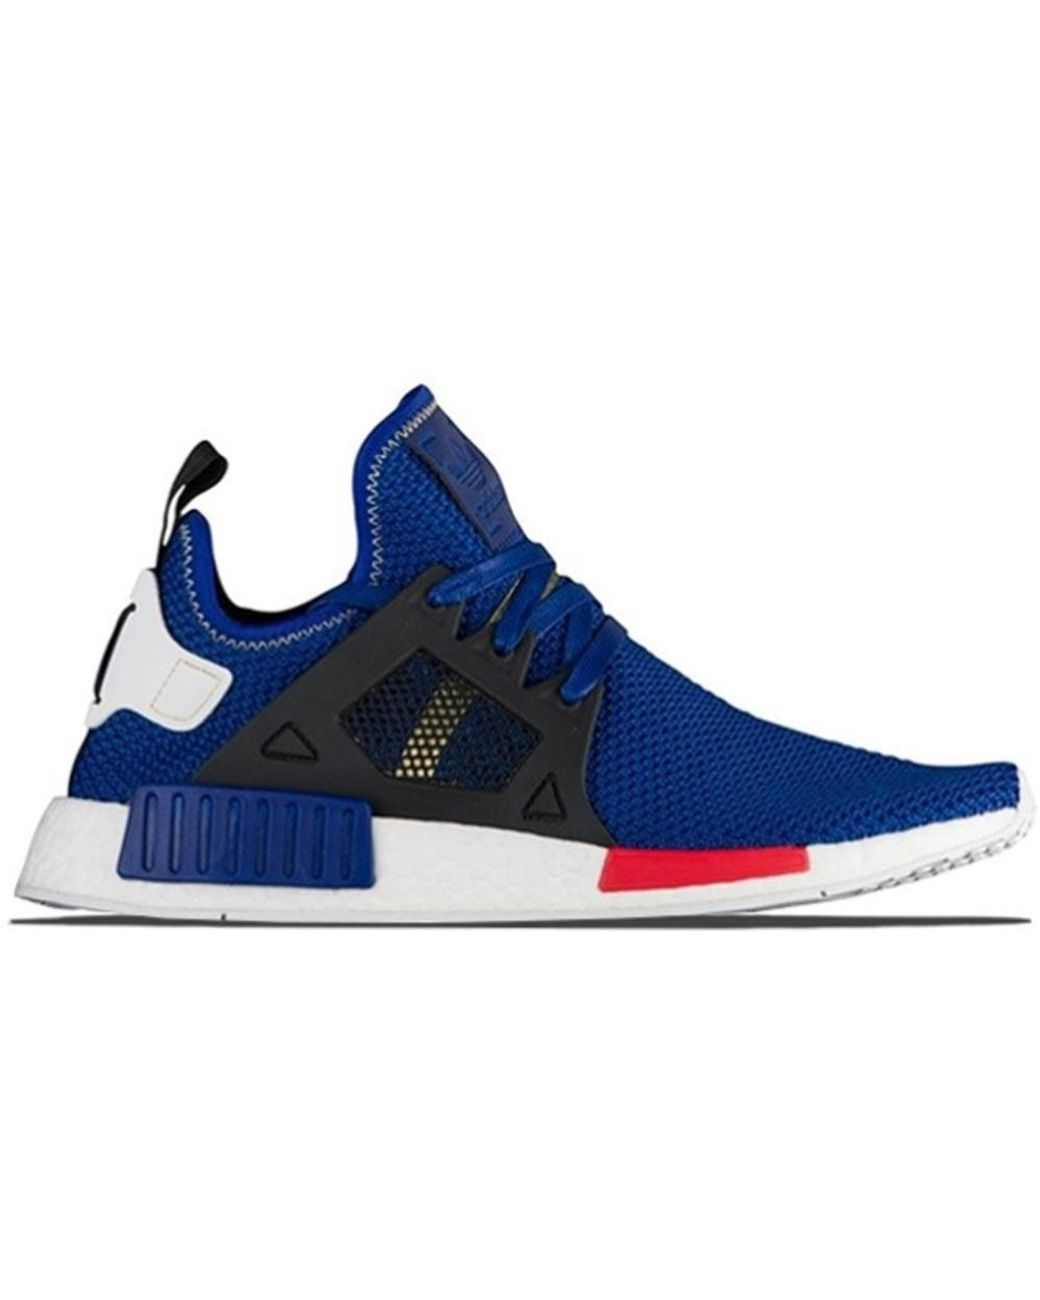 new style ac212 b5192 Men's Nmd Xr1 Mystery Blue